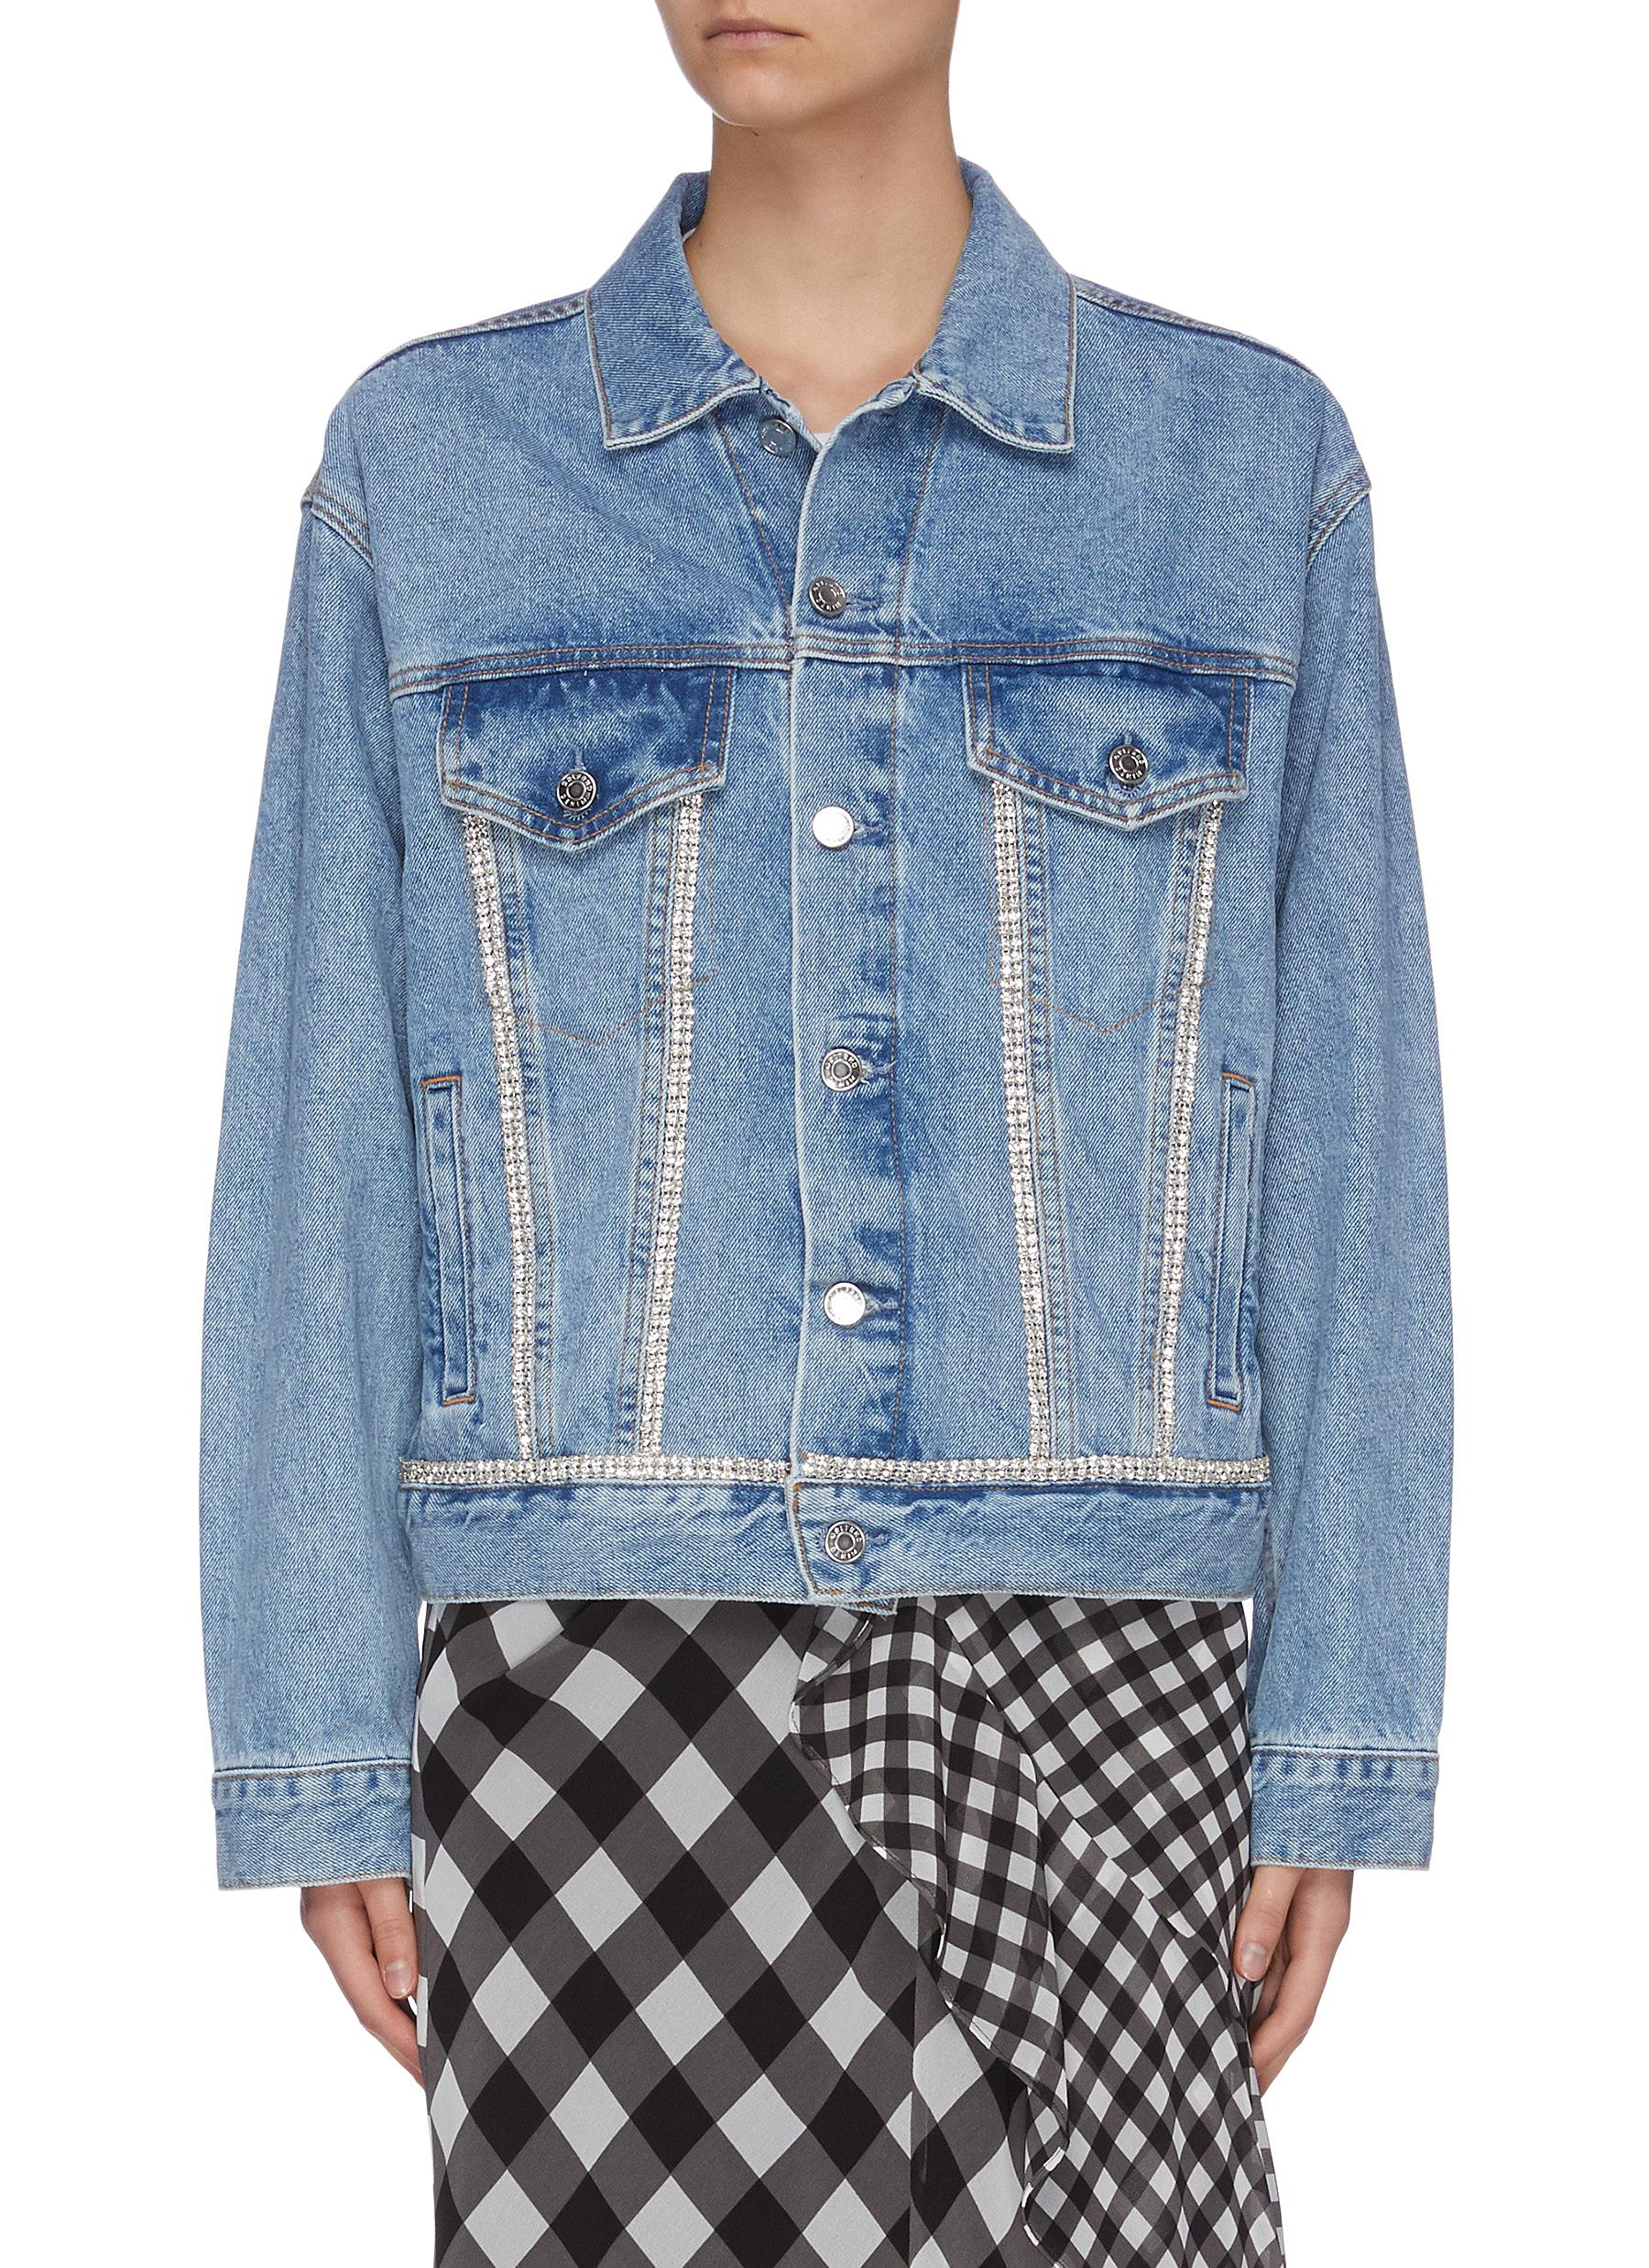 Buy Grlfrnd Jackets 'Kim' diamanté seam denim jacket